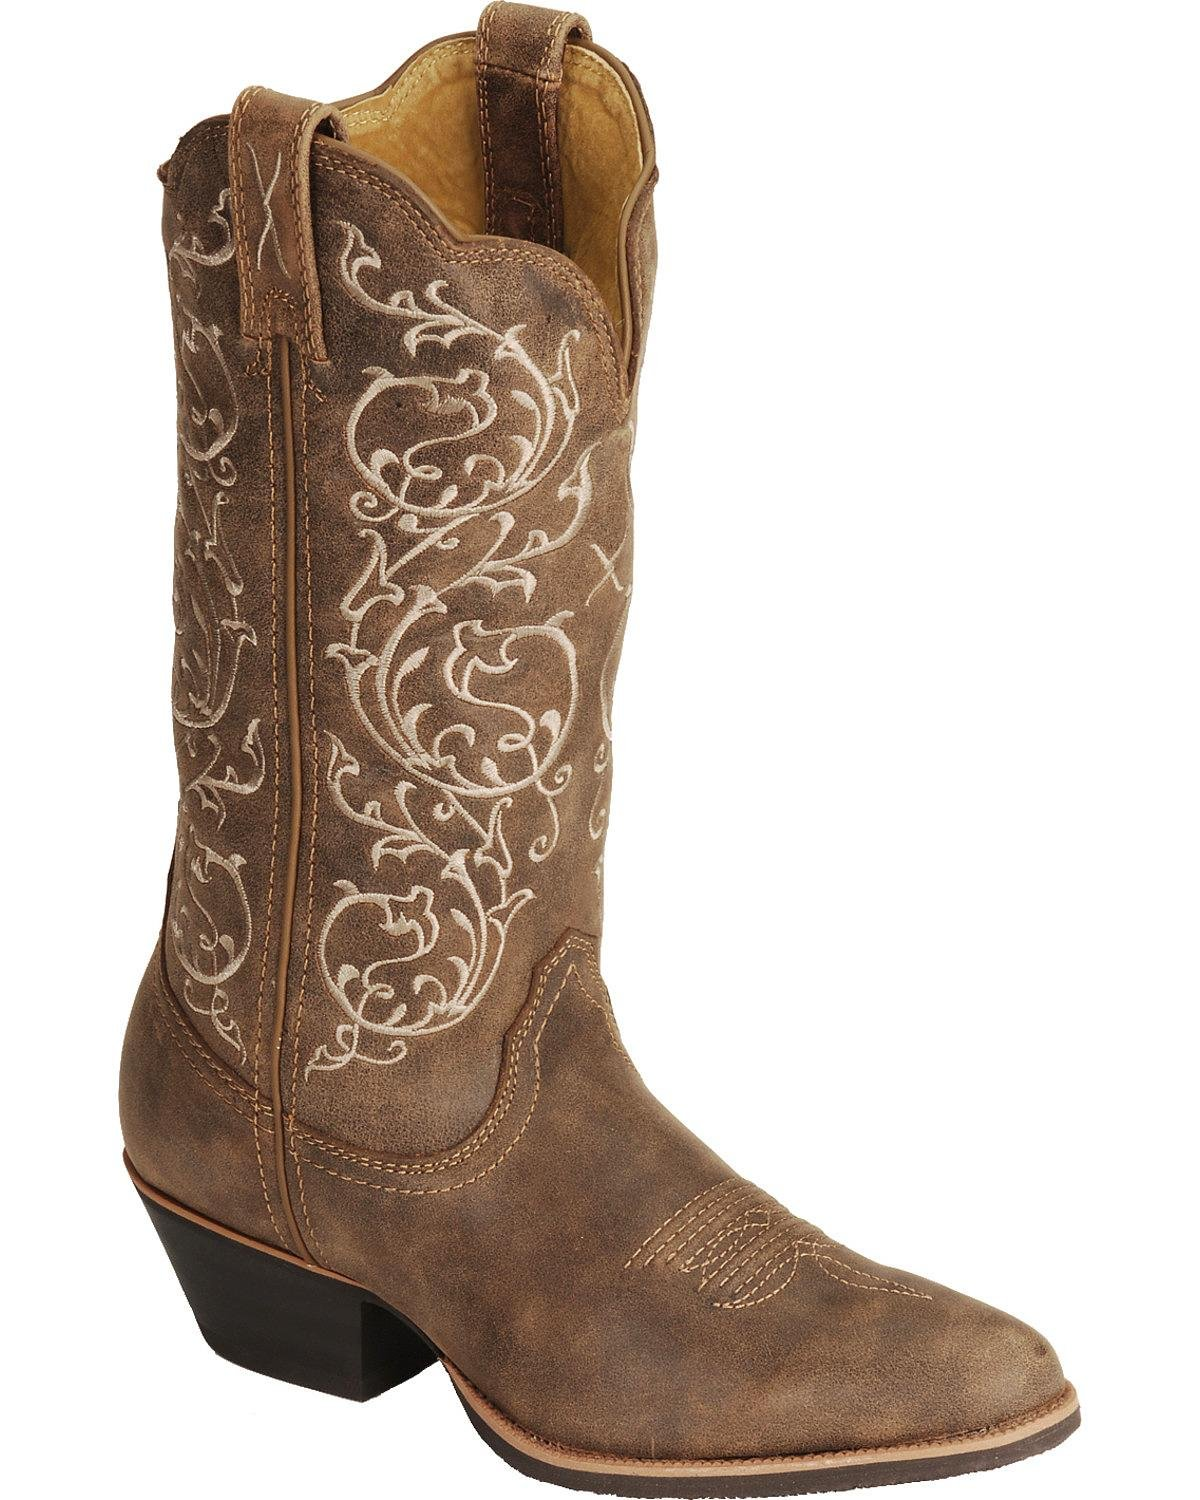 Twisted X Womens Western Boot B00CHANP2Q 8 C/D US|Bomber